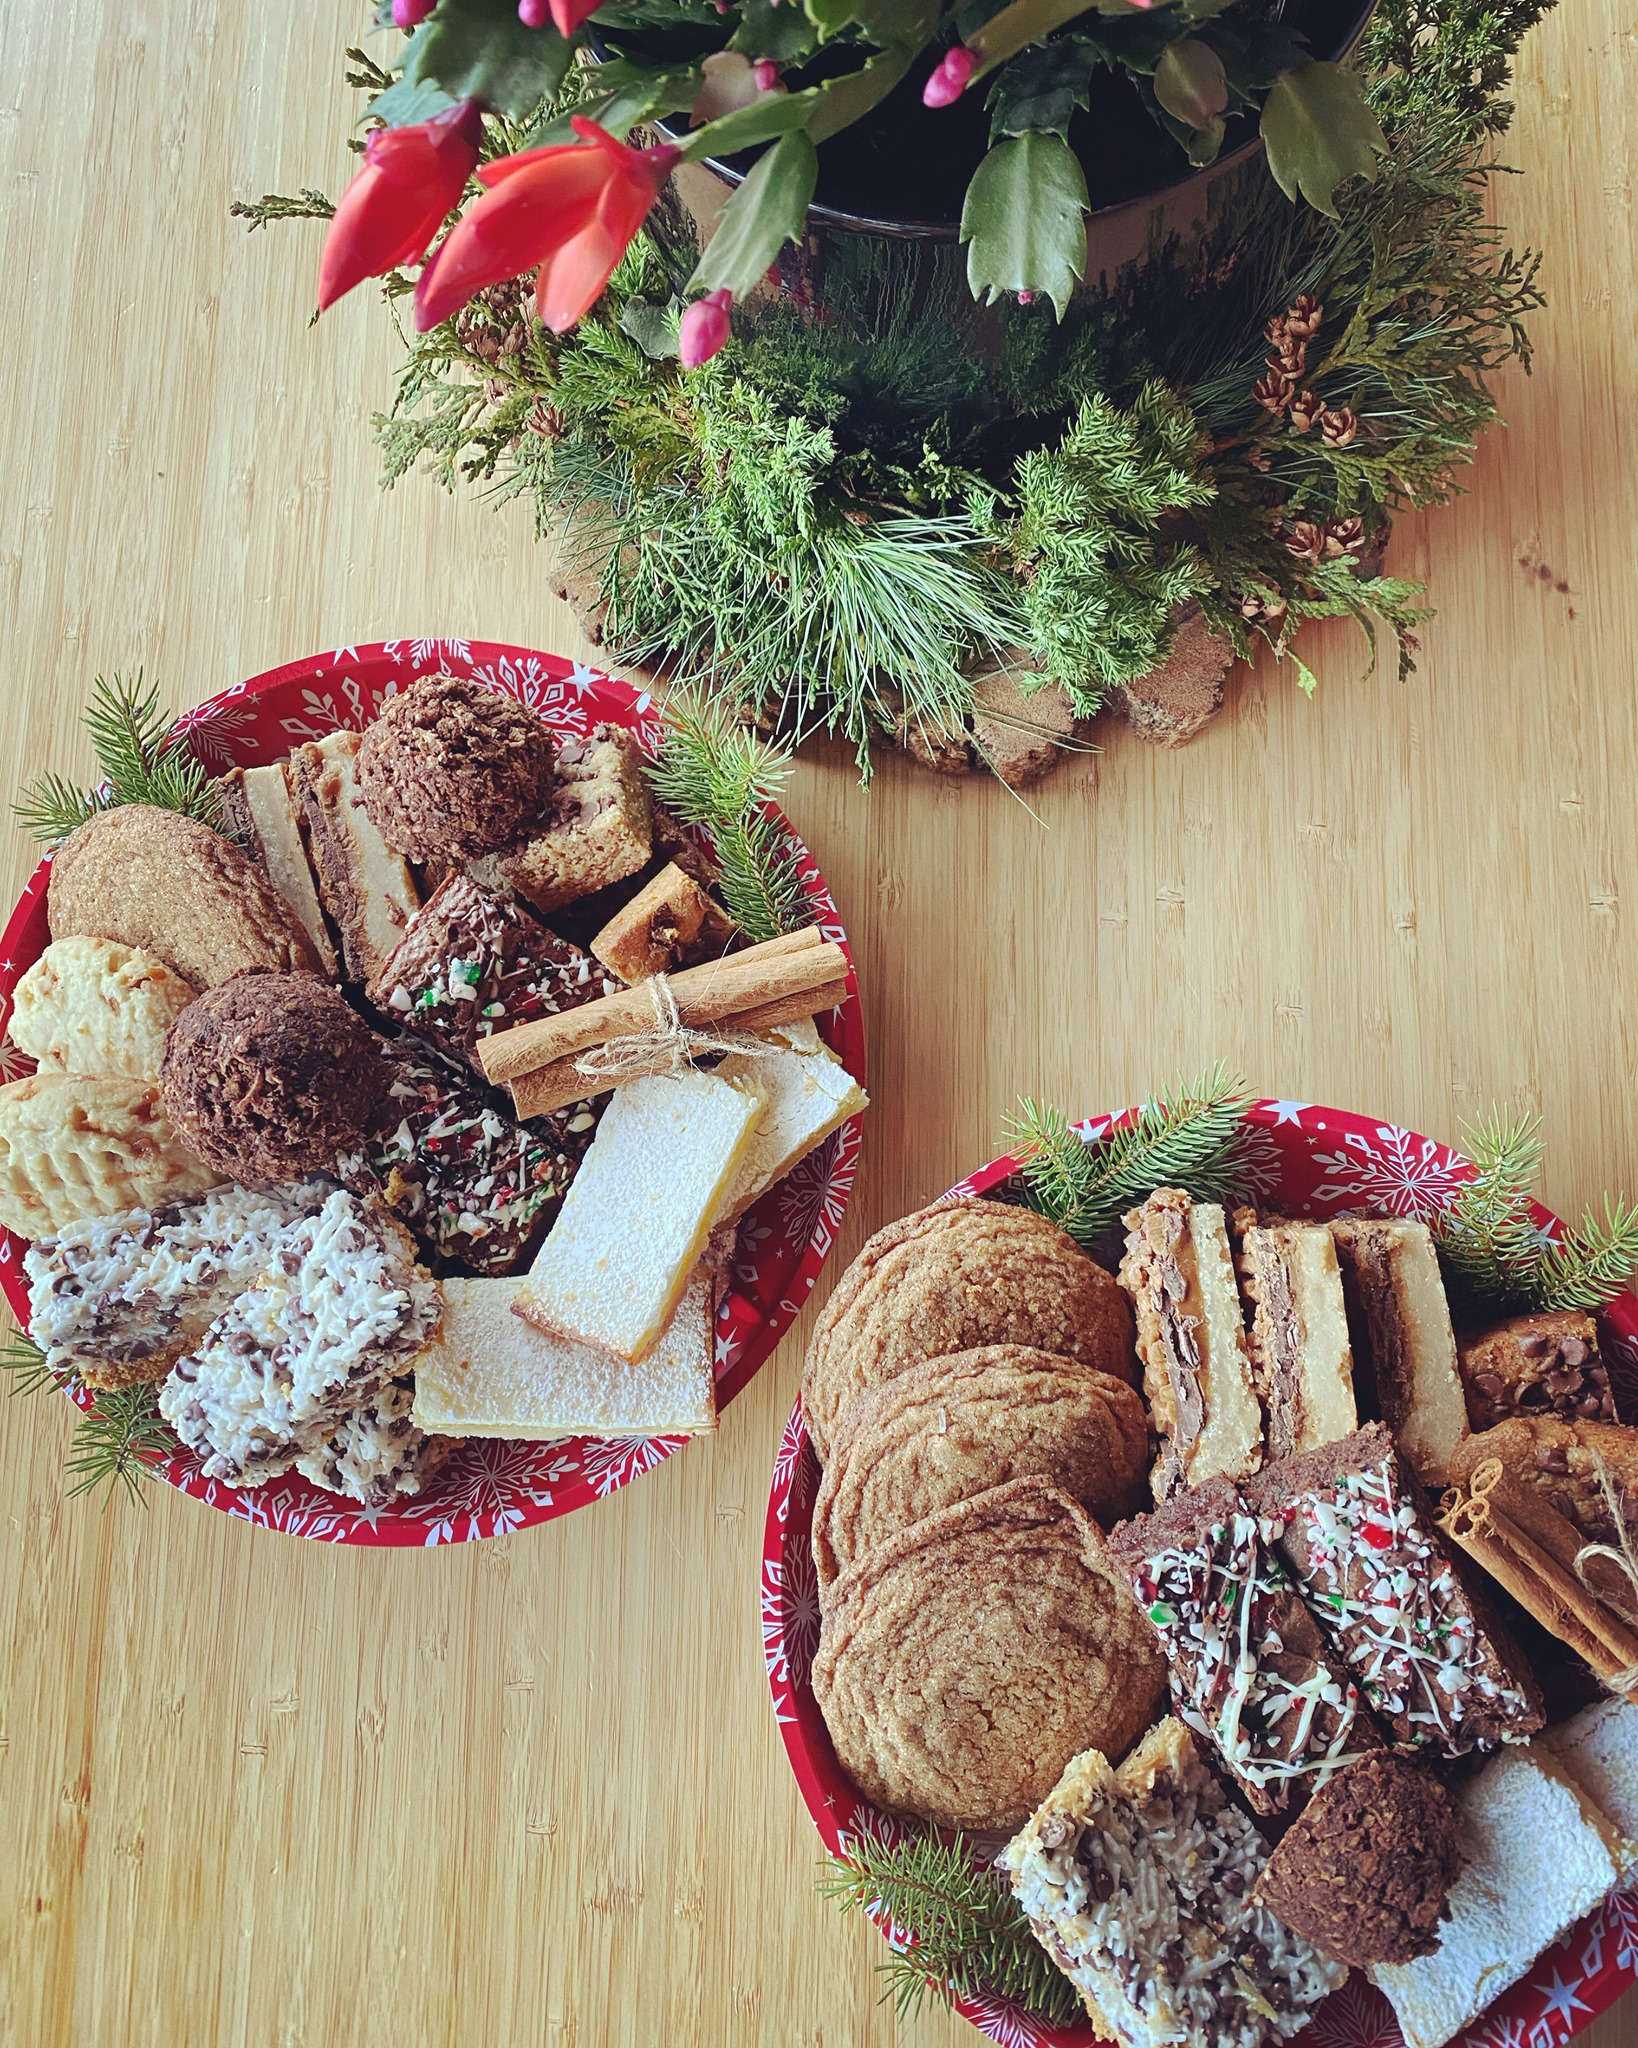 Plates of assorted holiday cookies on a wood table.